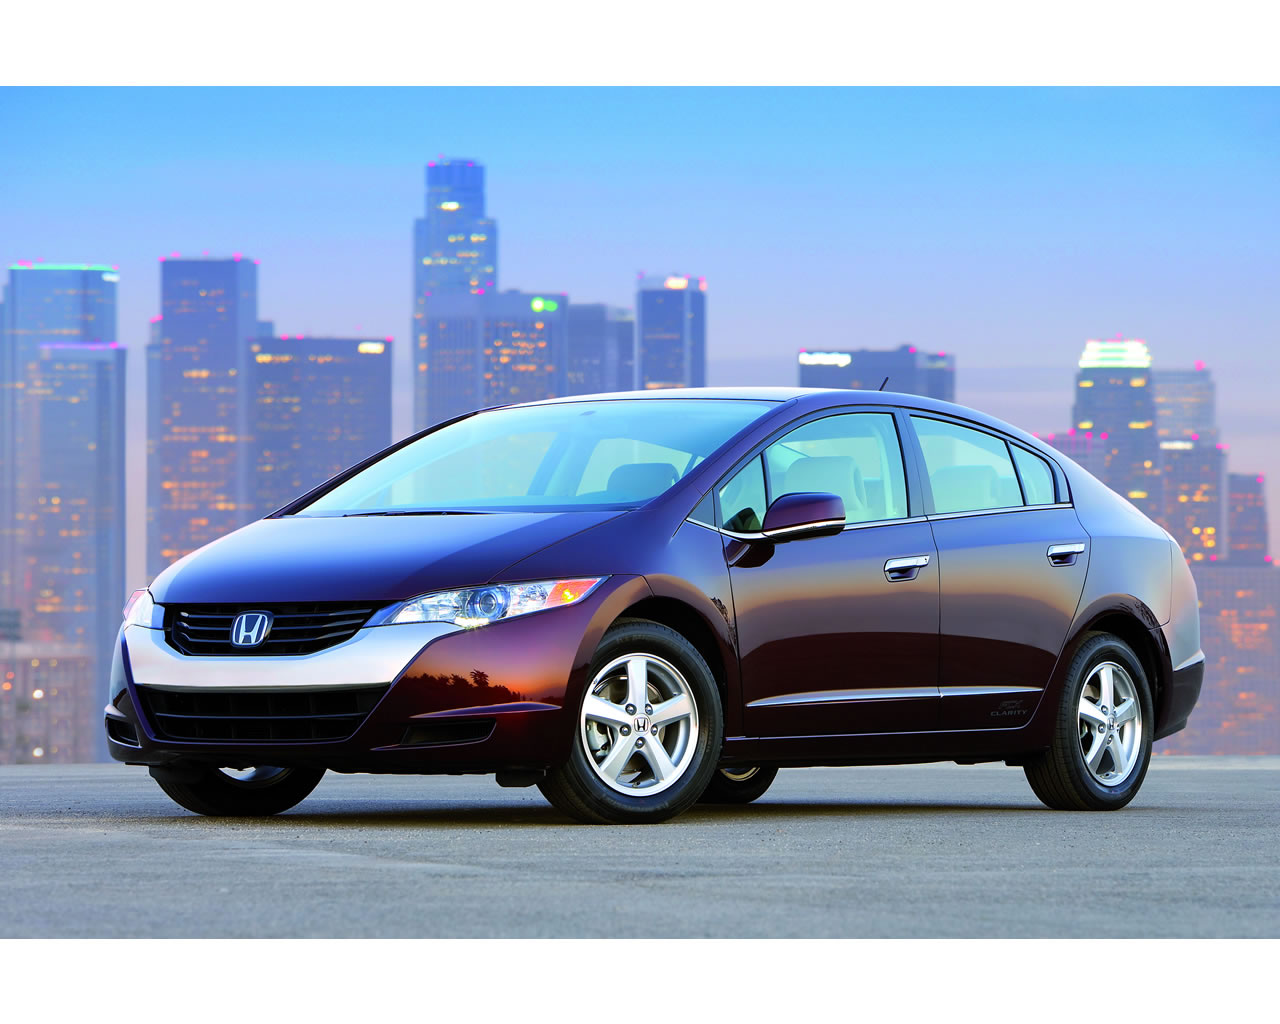 Honda fcx clarity hydrogen fuel cell vehicle 2008